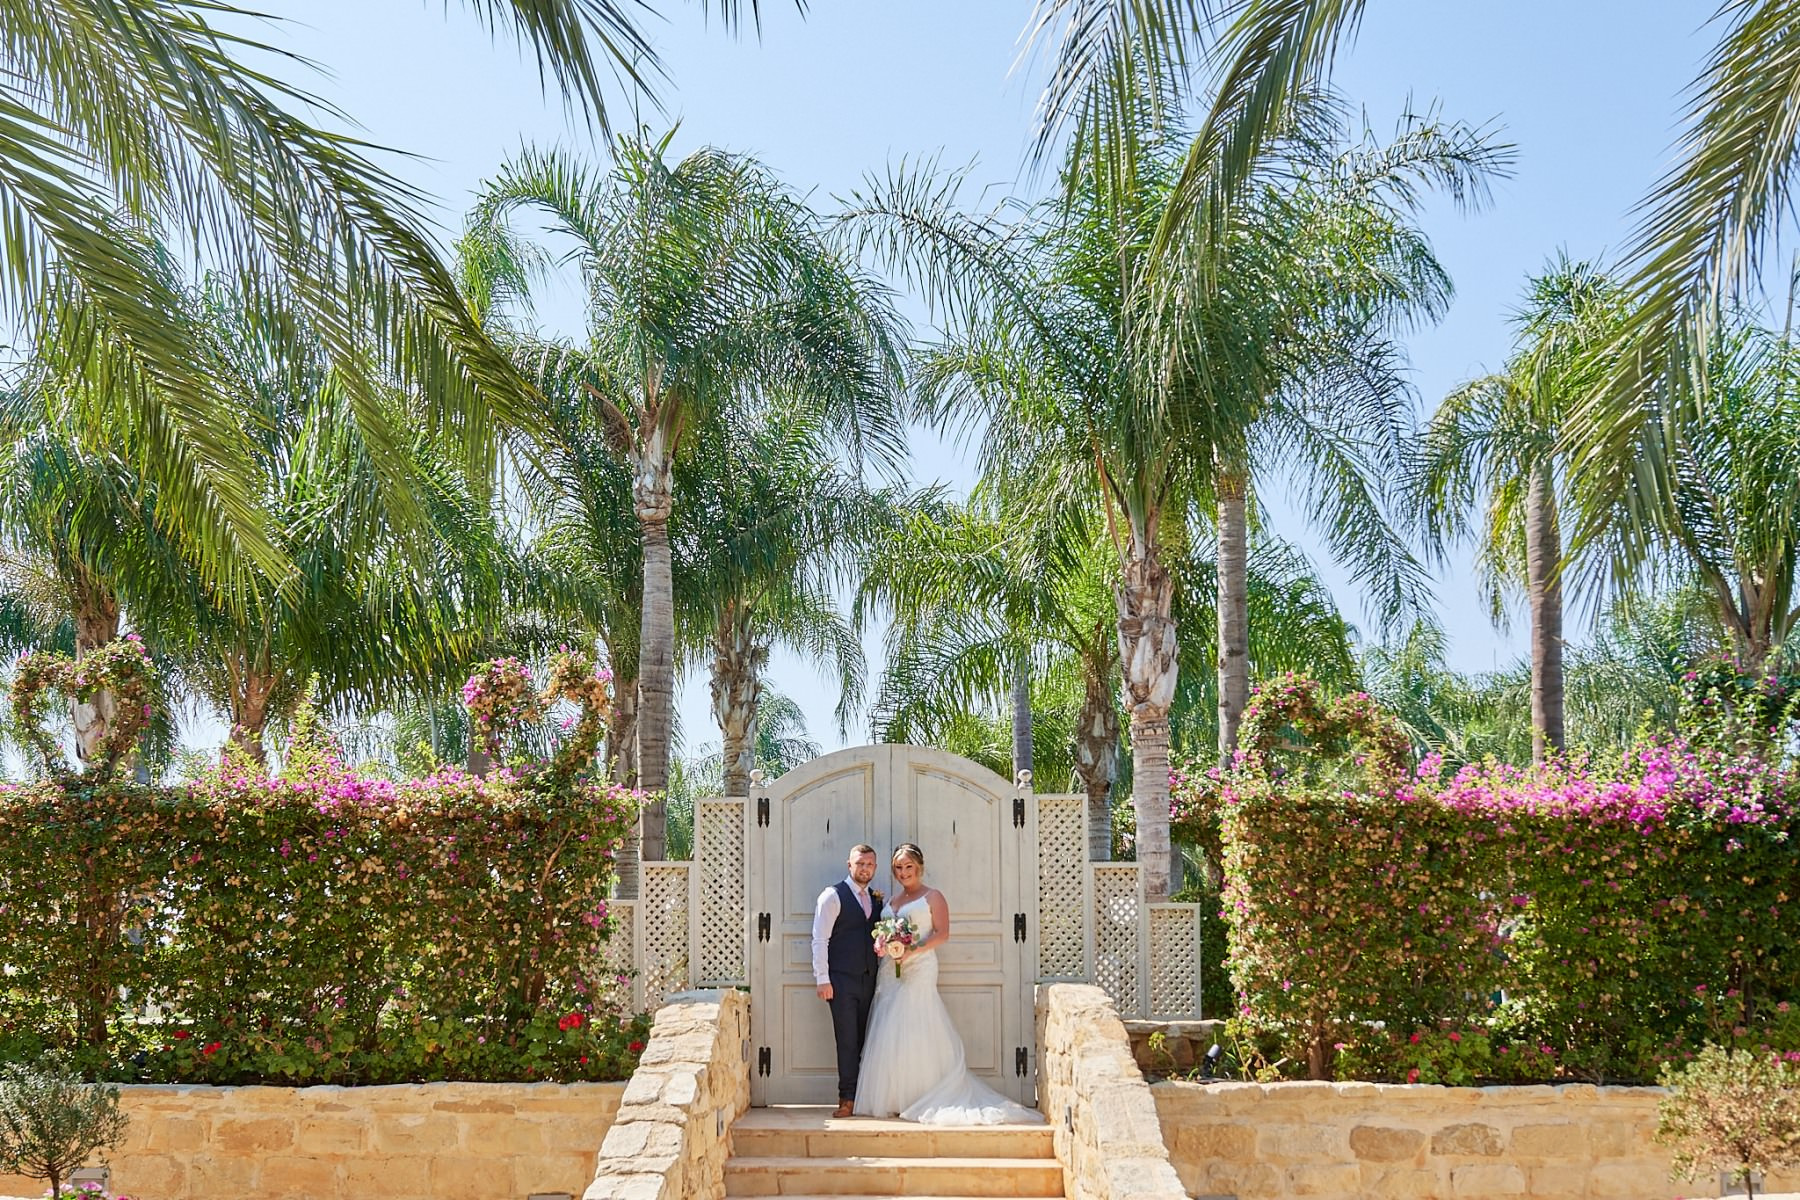 Wedding photograph, taken in Cyprus by Richard King